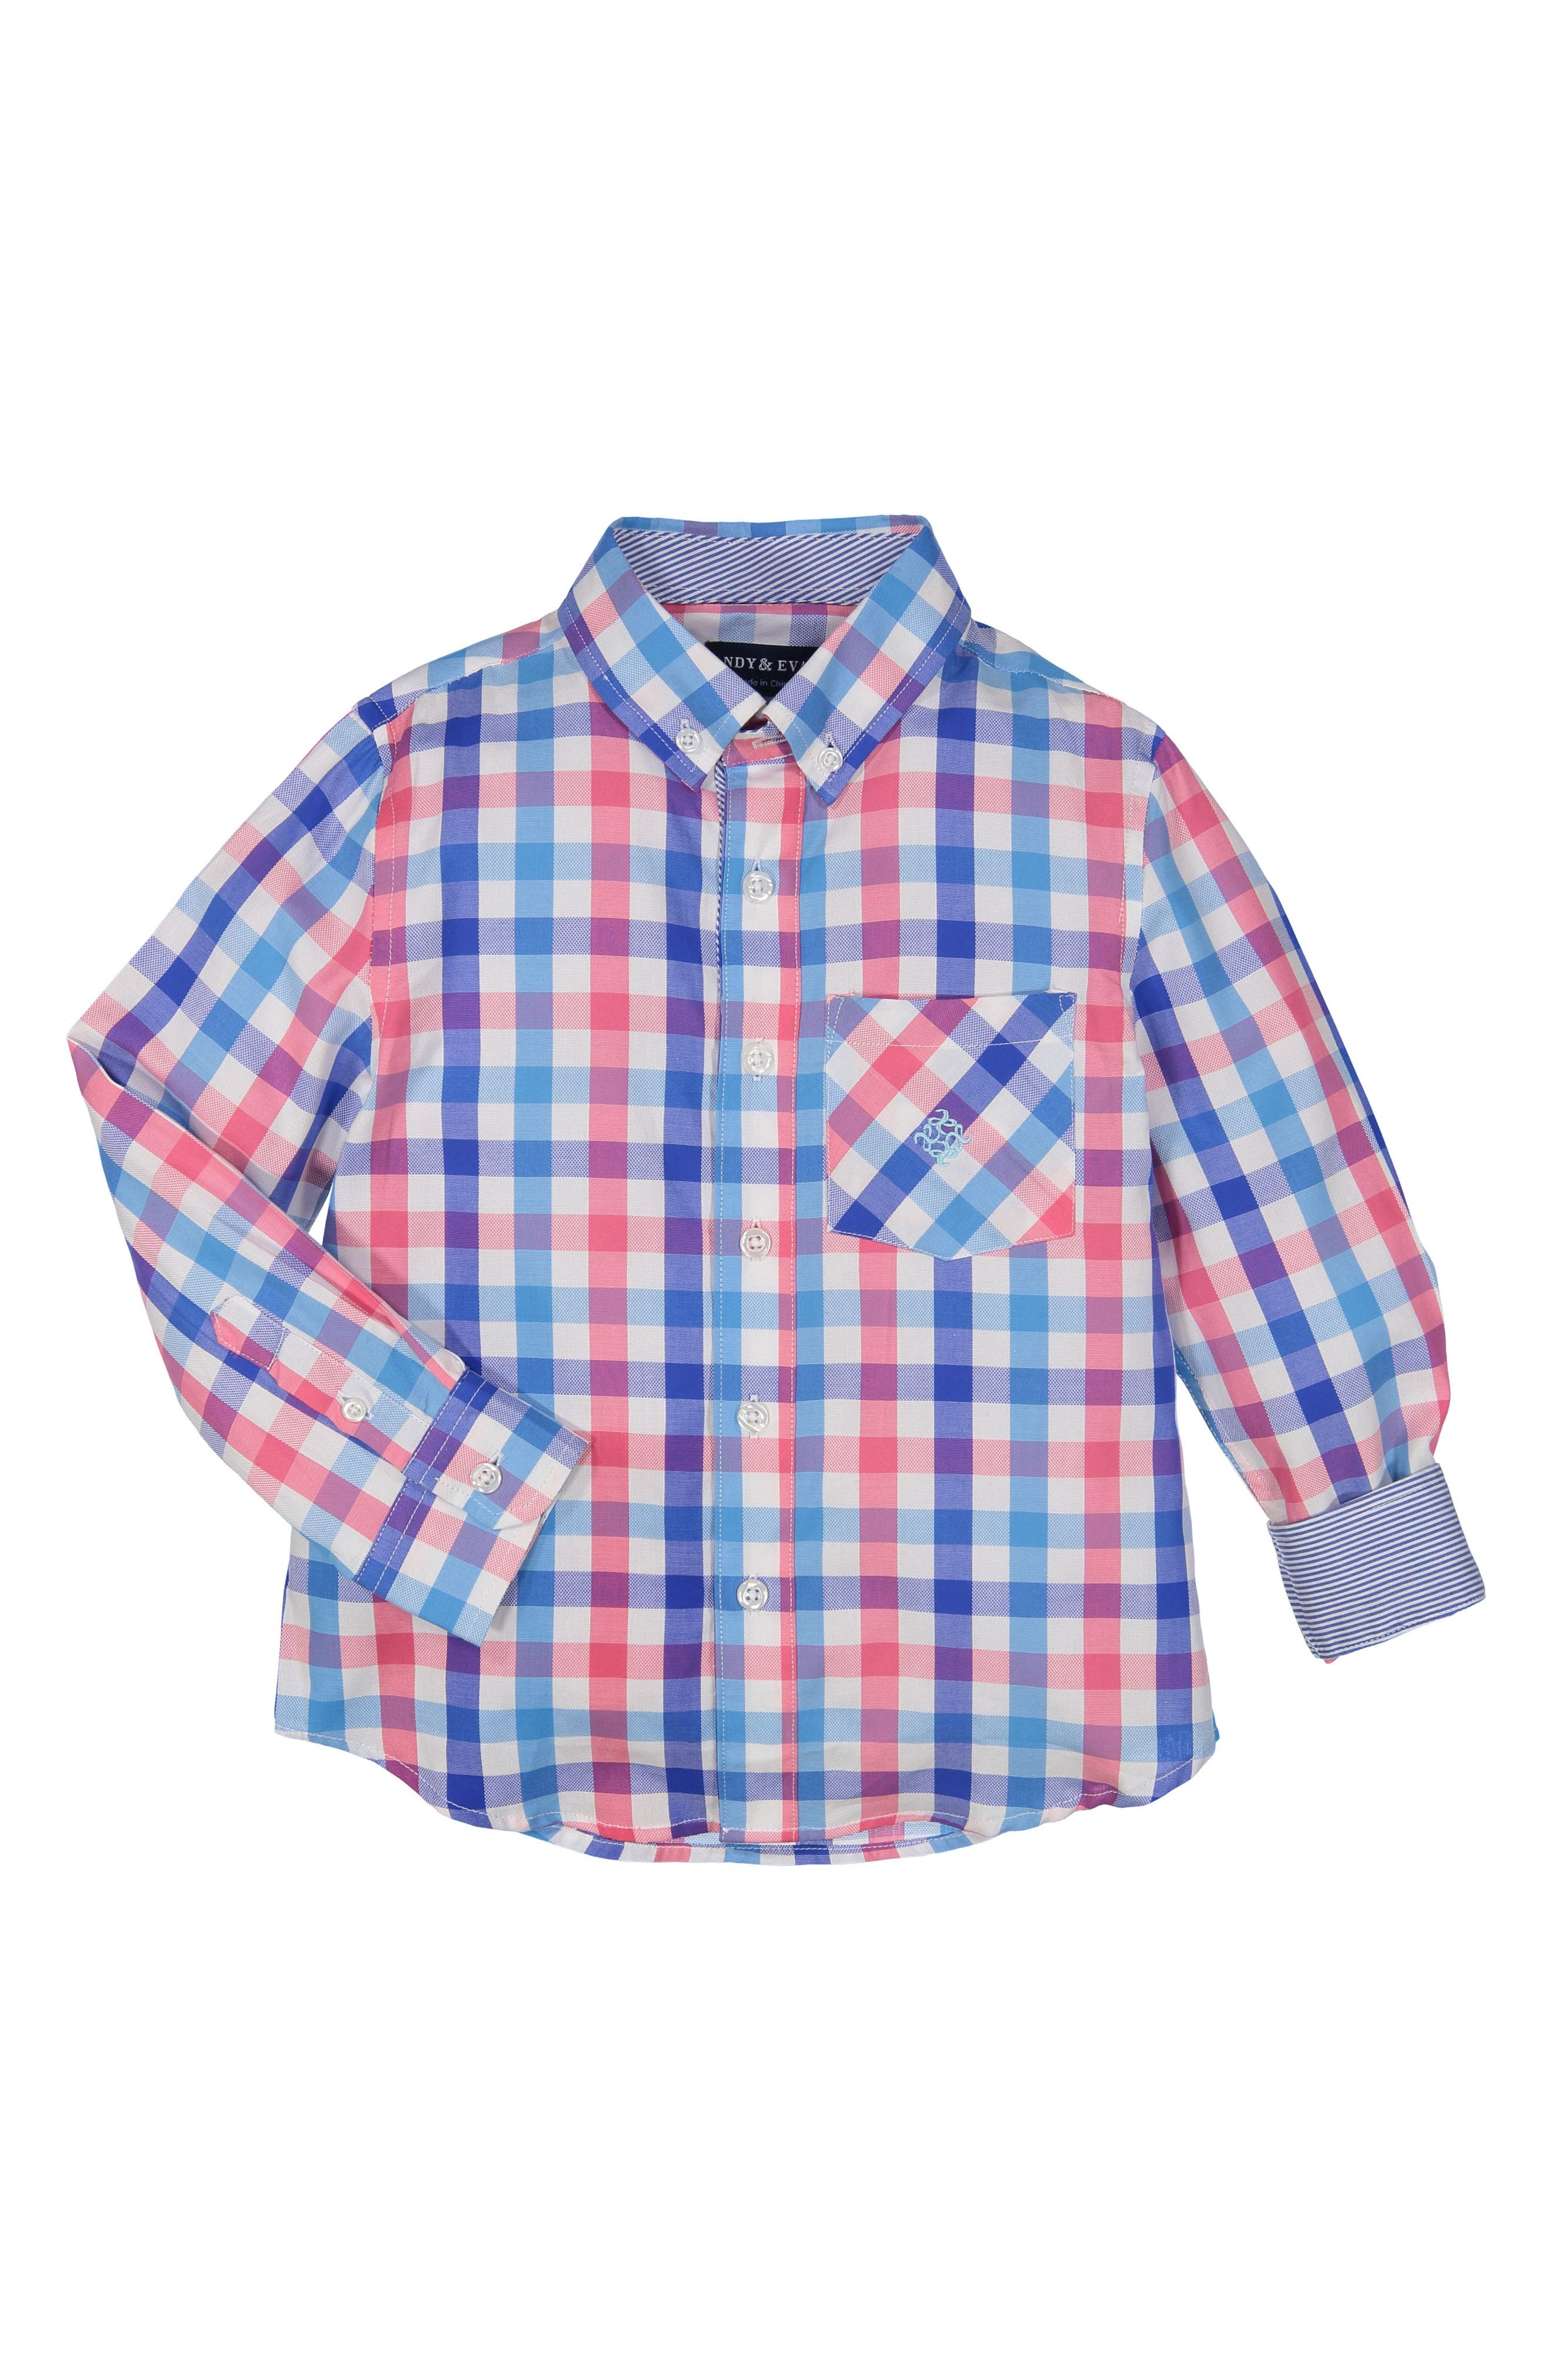 Andy & Evan Check Woven Shirt (Toddler Boys & Little Boys)